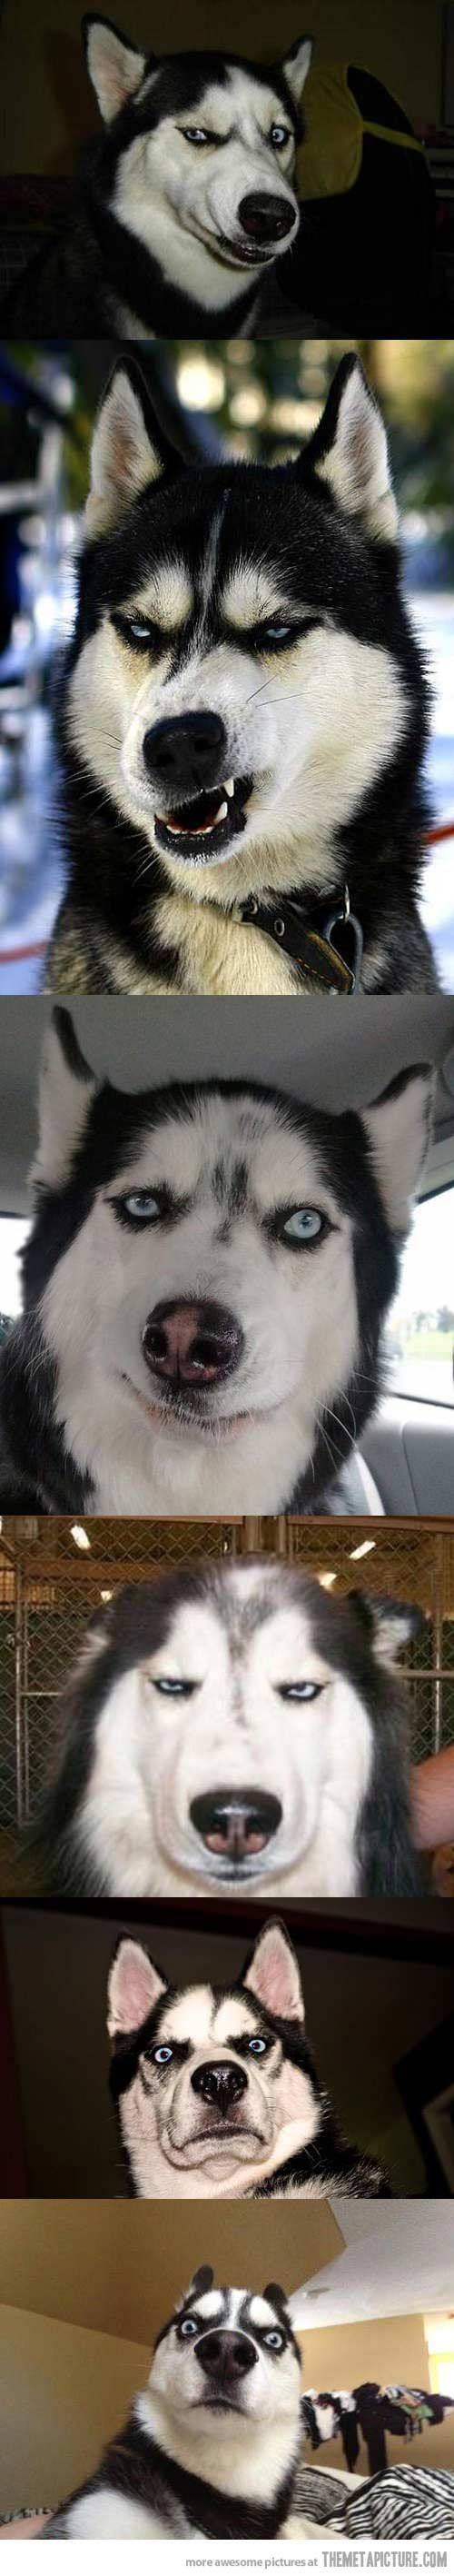 Huskies make the best faces!!!